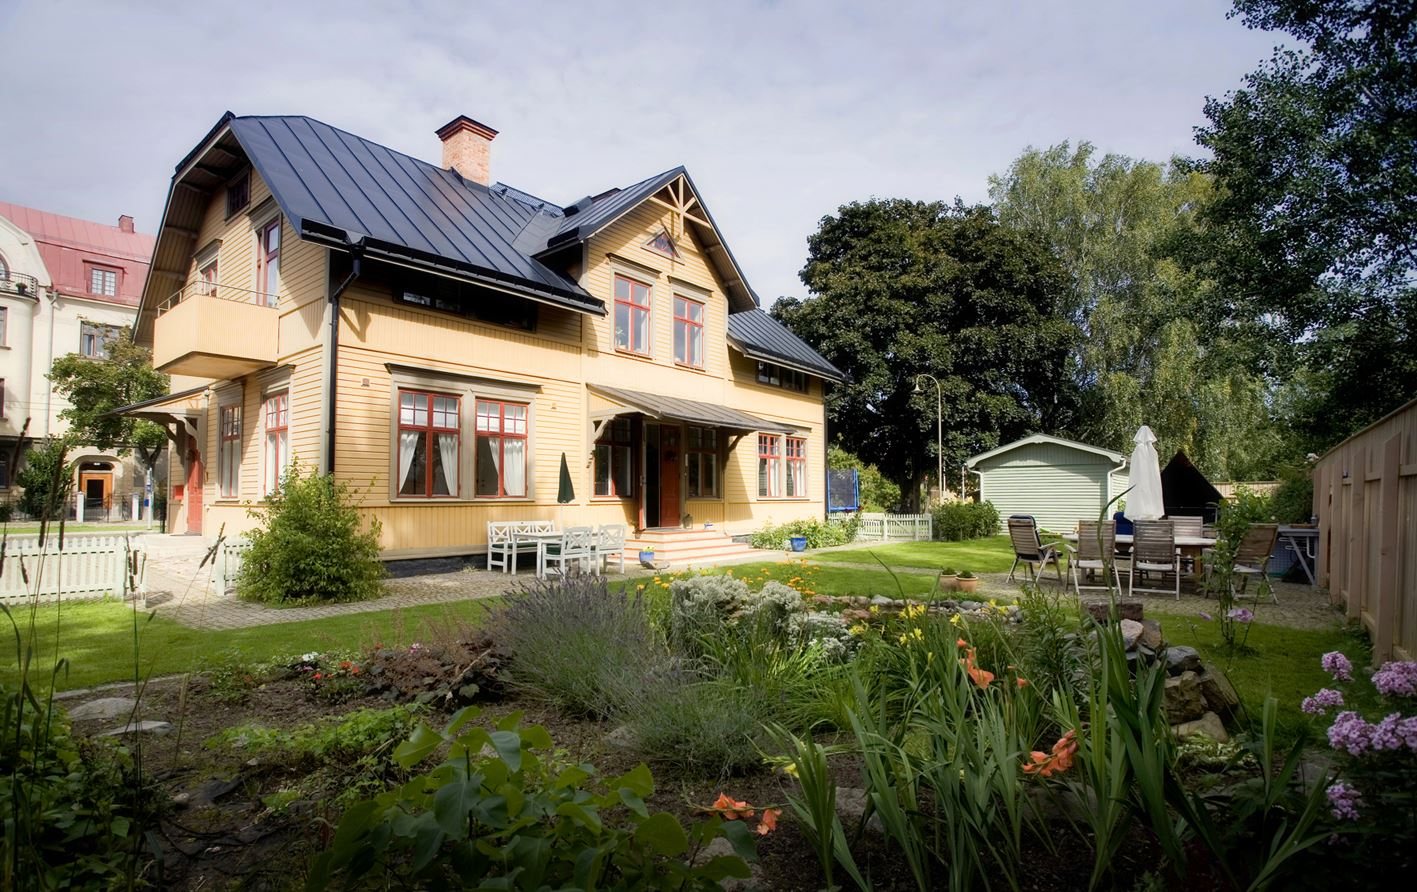 Västra Station B&B